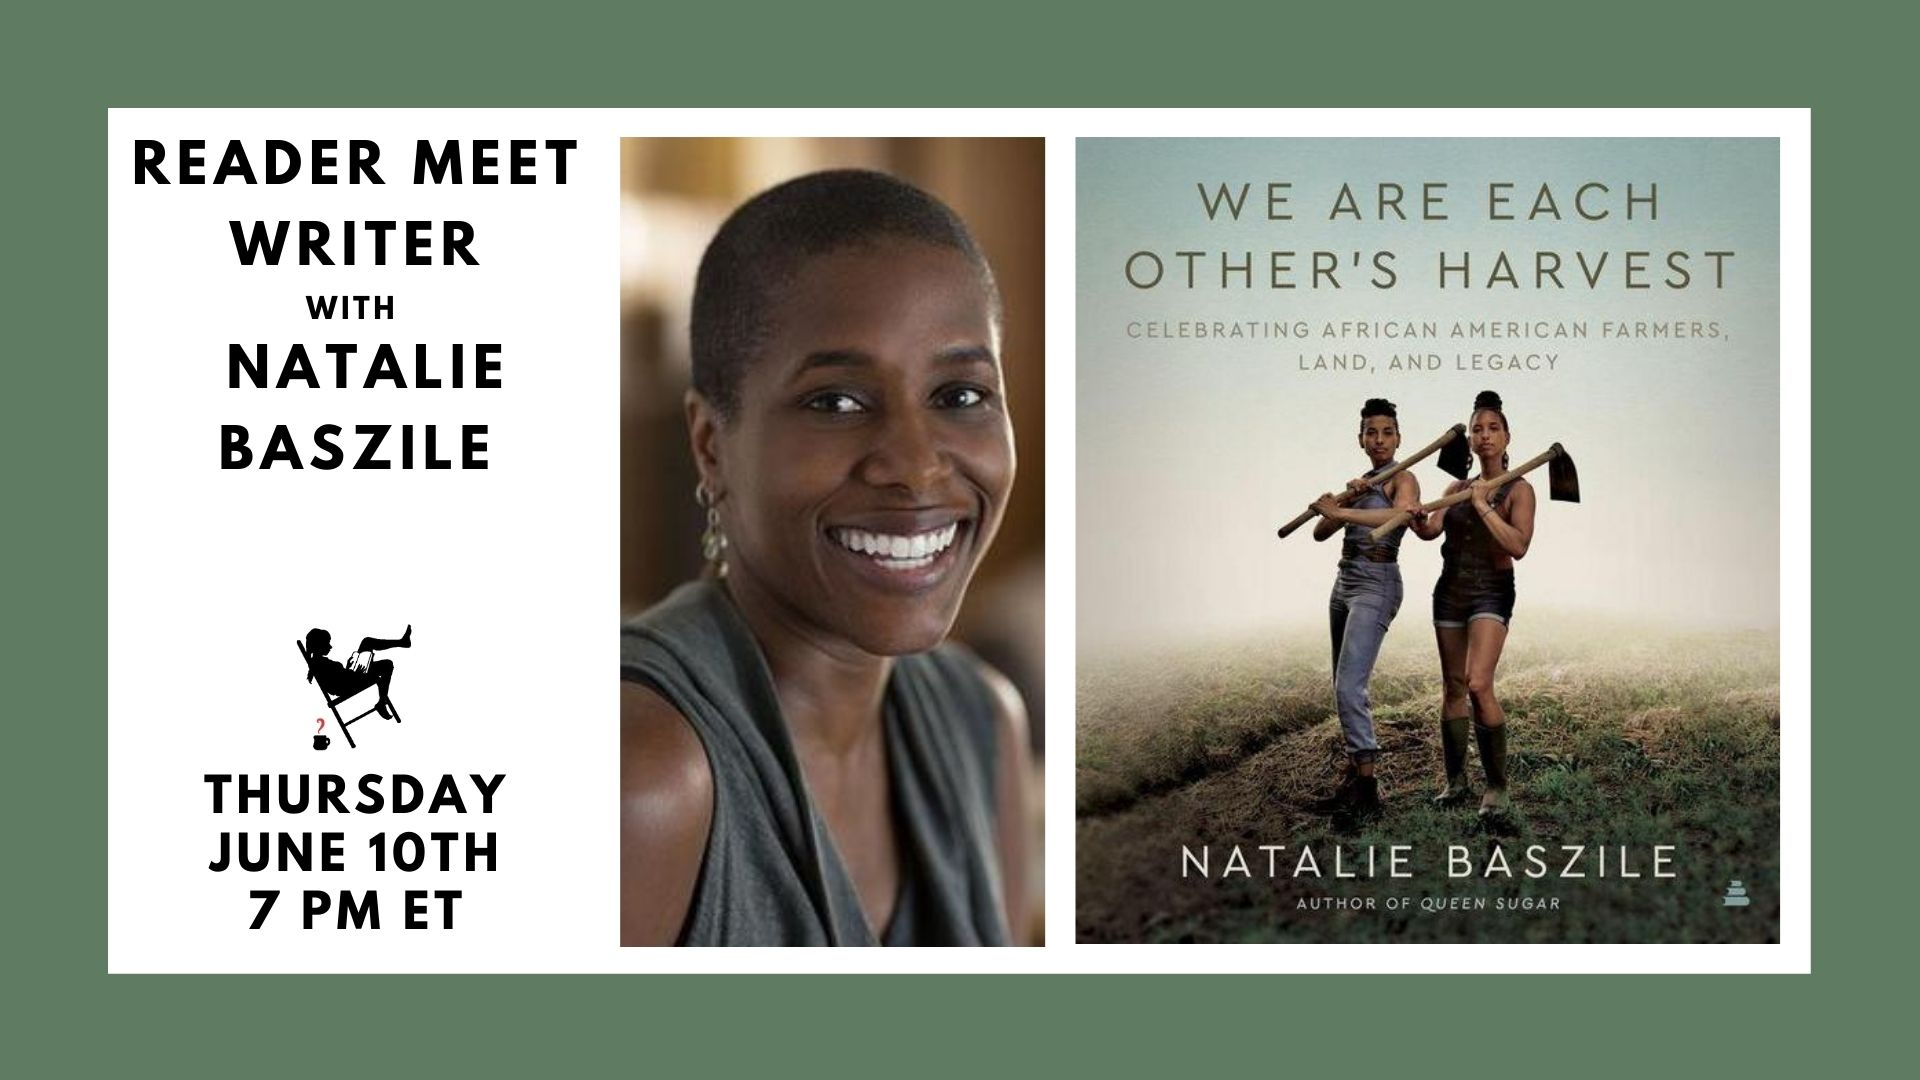 Image shows author and featured book cover for event on 6/10/21 at 7pm